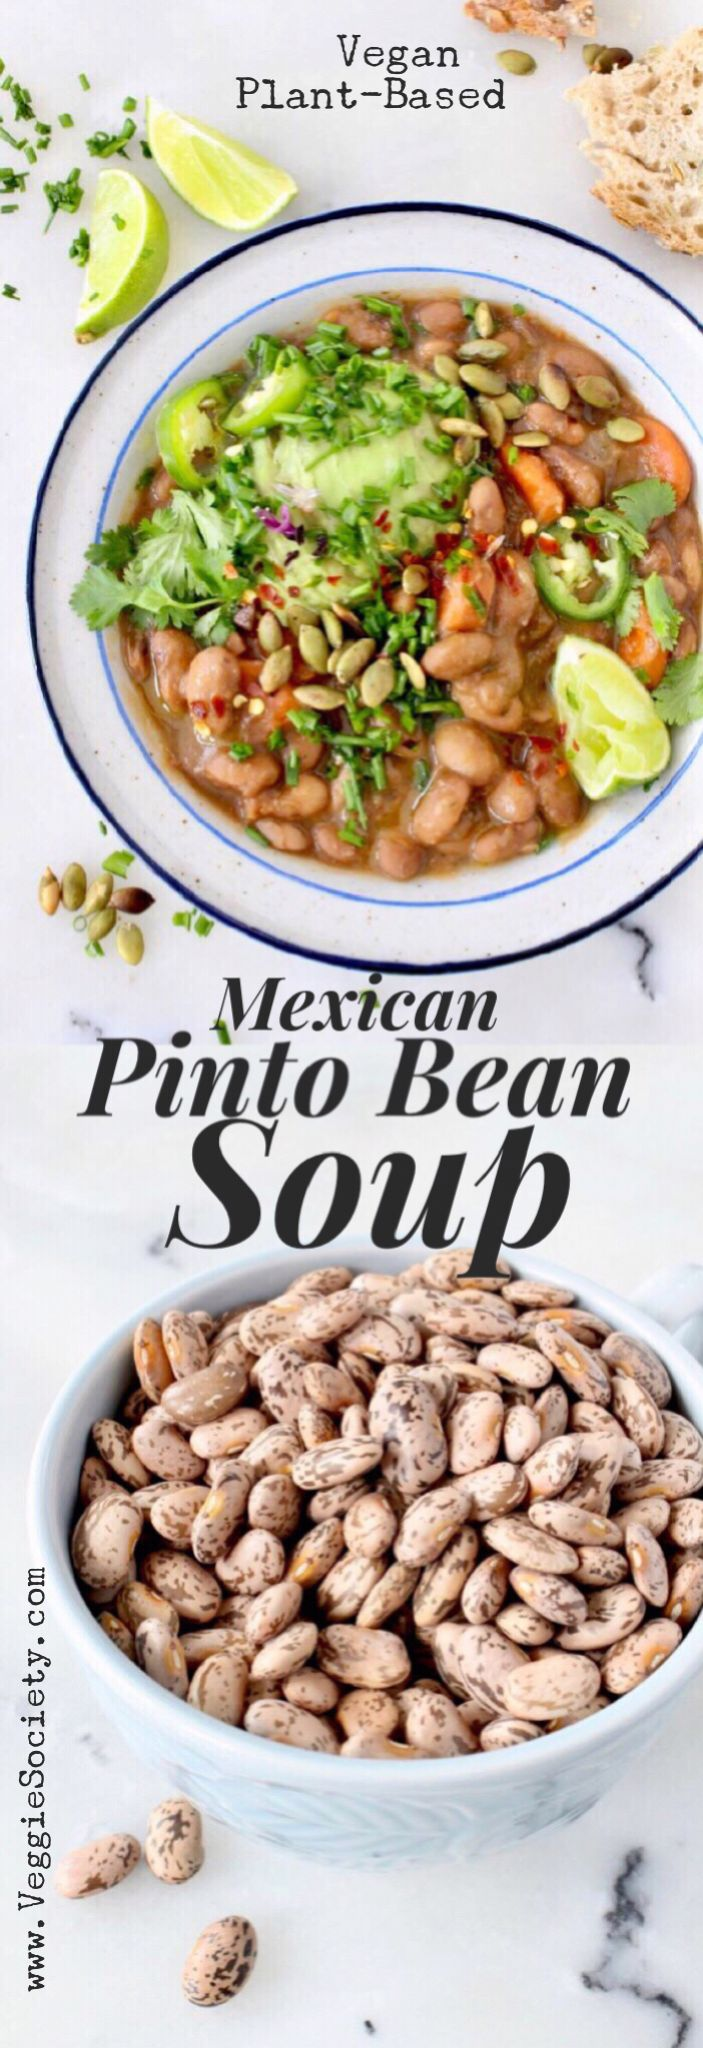 Vegan Pinto Bean Soup / Stew Recipe With Mexican Seasonings, Avocado and Lime. | VeggieSociety.com #vegan #wfpb #soup